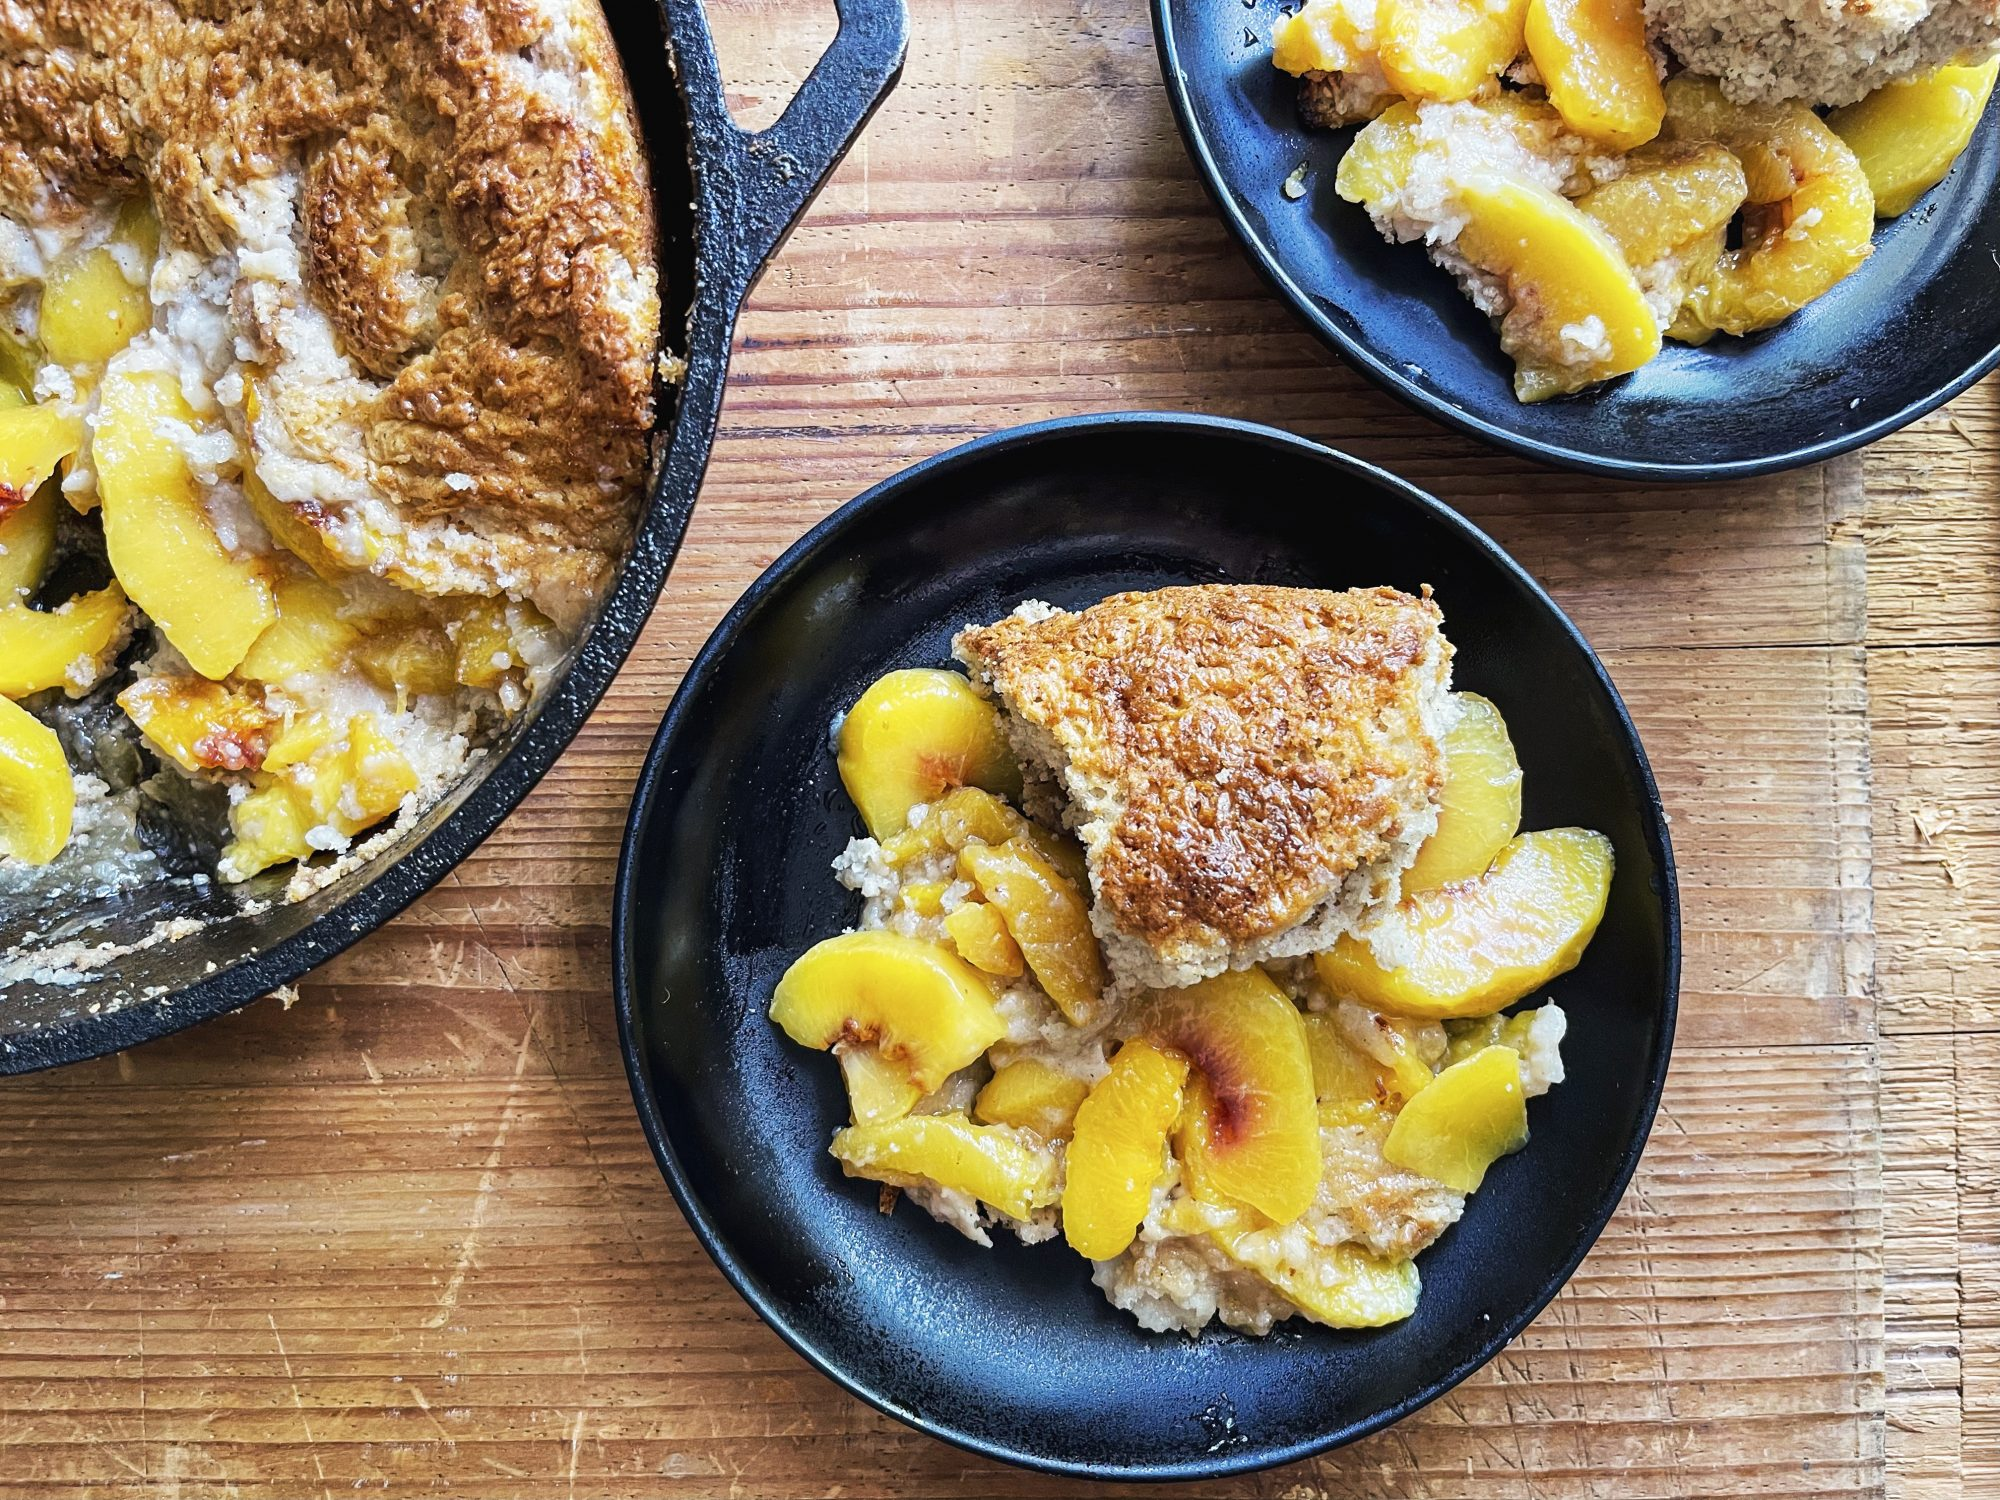 Dutch Oven Peach Cobbler for Camping